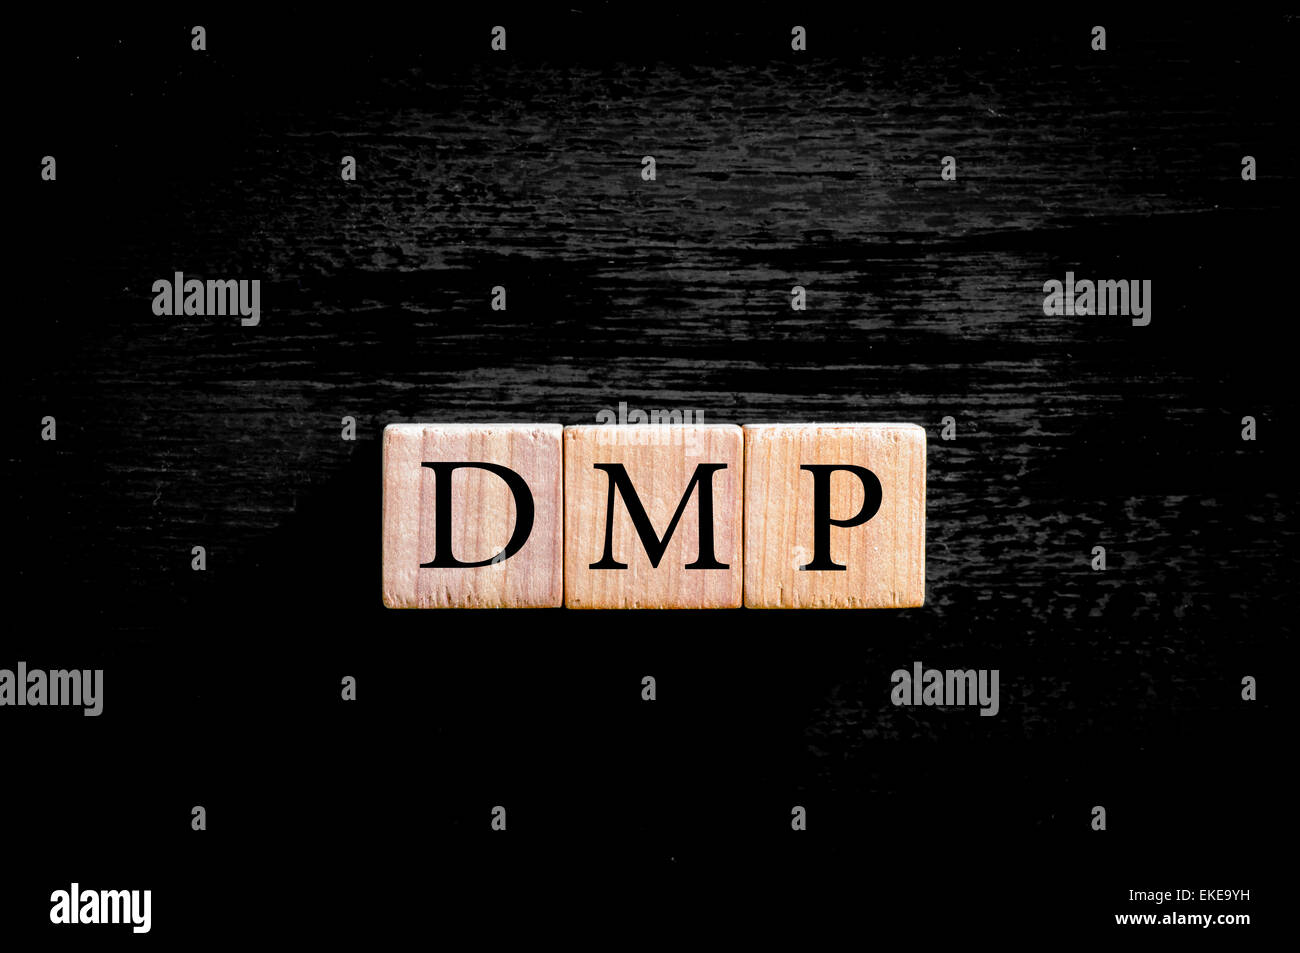 Acronym DMP- debt management plan. Wooden small cubes with letters isolated on black background with copy space - Stock Image